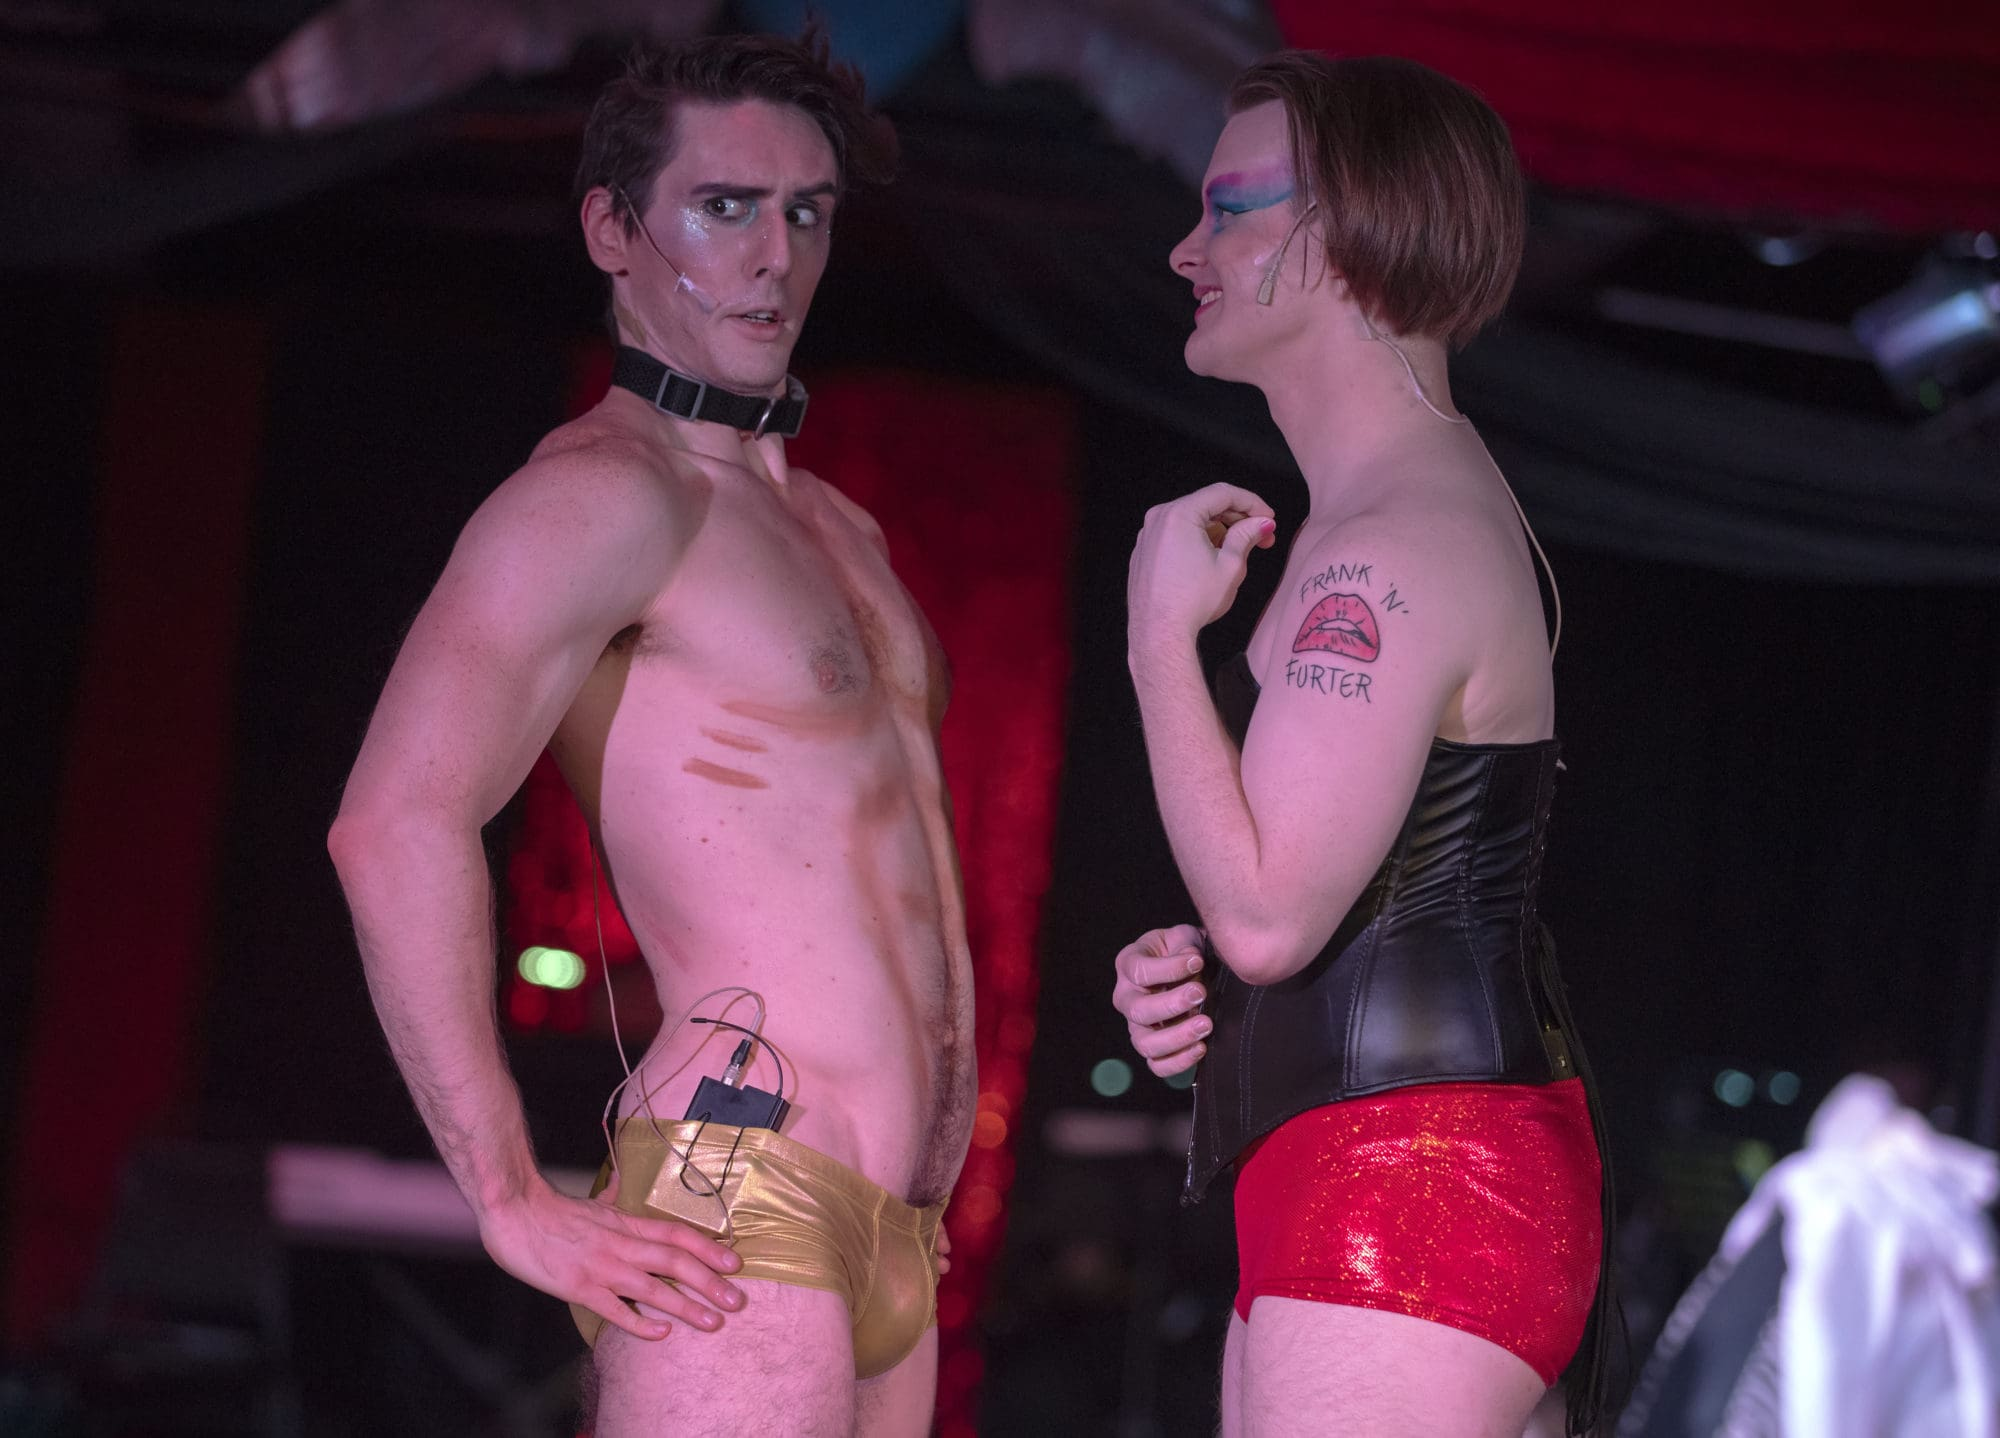 Alexander Bruce Gordon as Rocky and Kenneth Lautz as Frank 'N' Furter. Photo by Rachel Zirkin Duda.